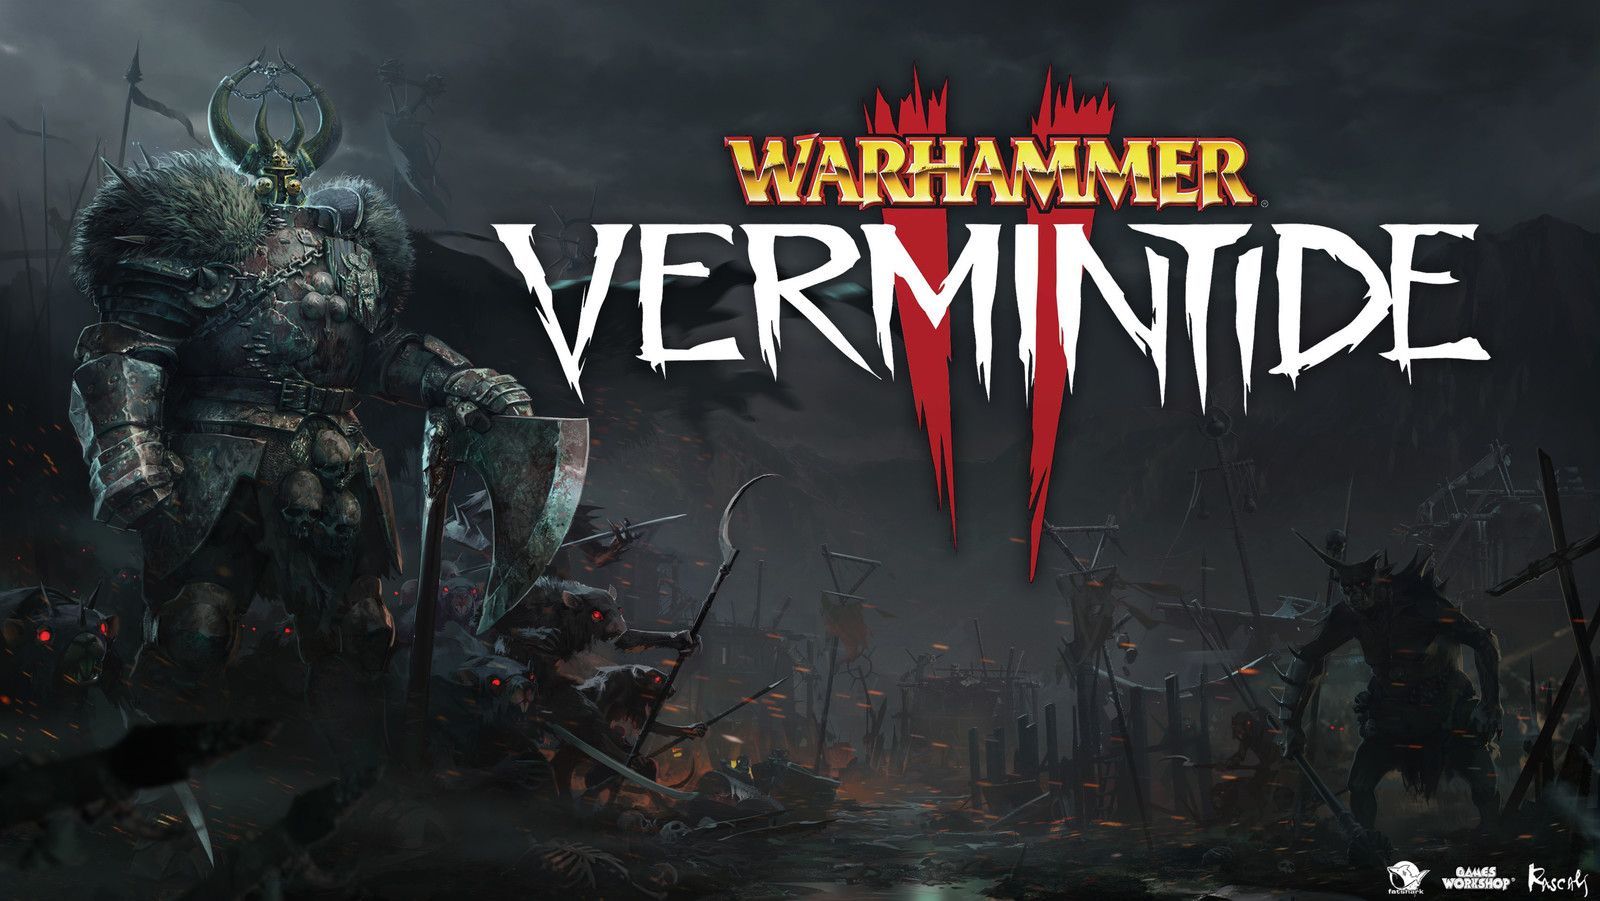 The 'Enemy' Artwork for Warhammer: Vermintide II  was widely featured in game's marketing campaign and trailers.